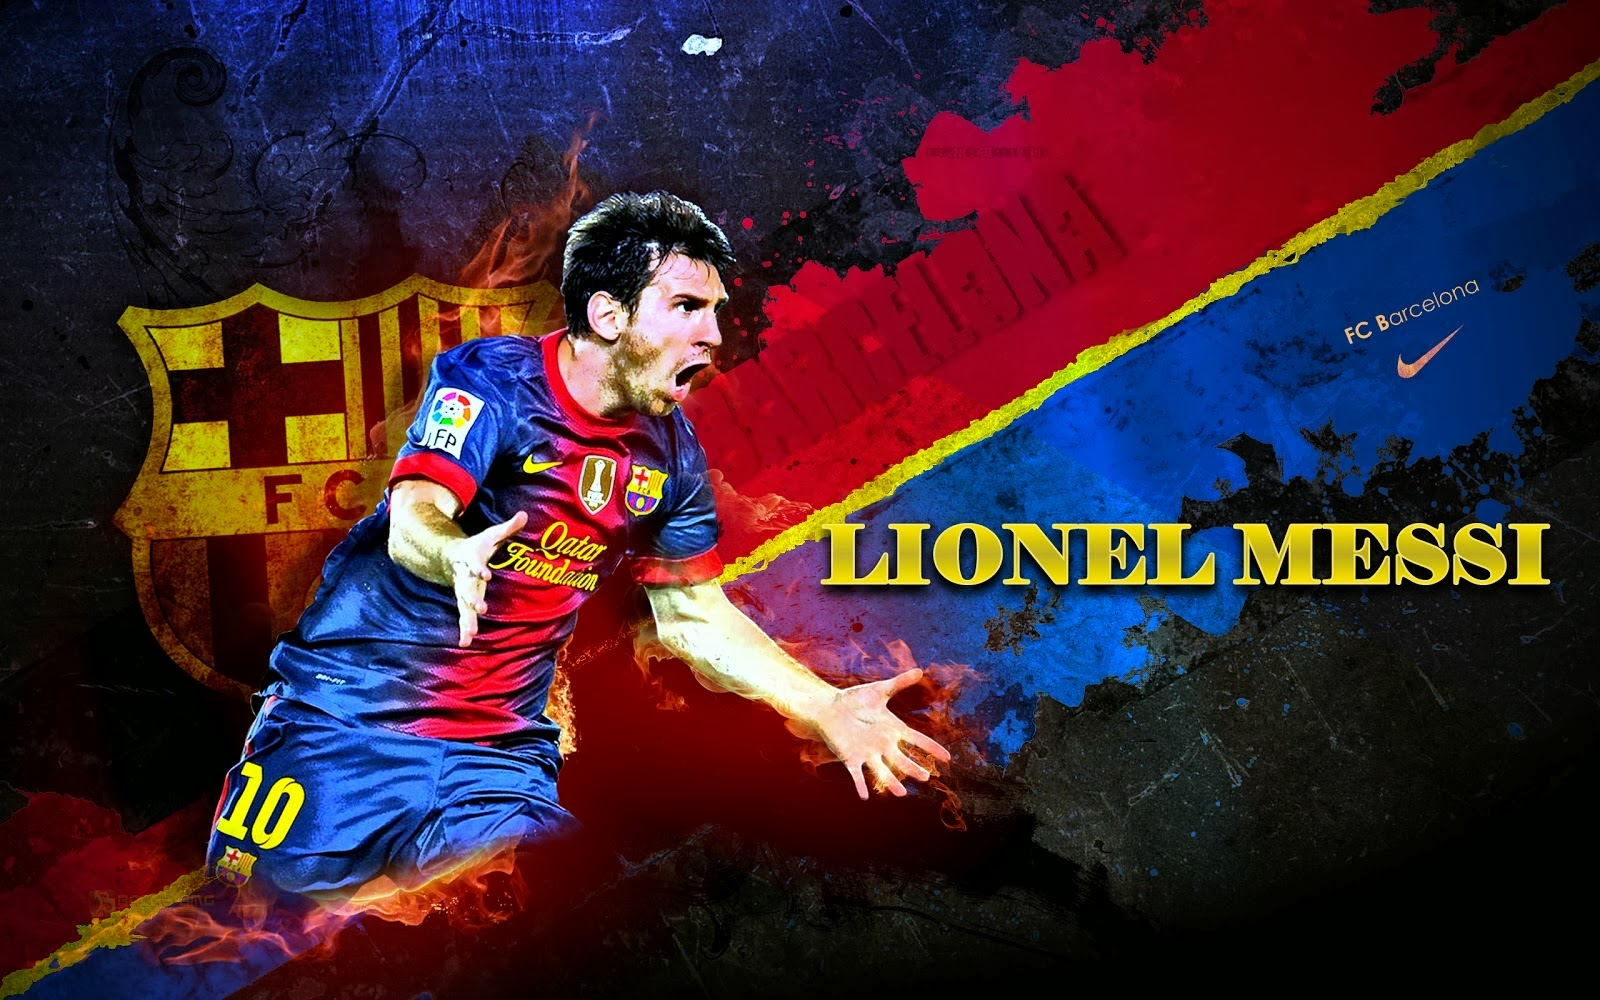 Lionel Messi New HD Wallpapers 2014 2015 1600x1000